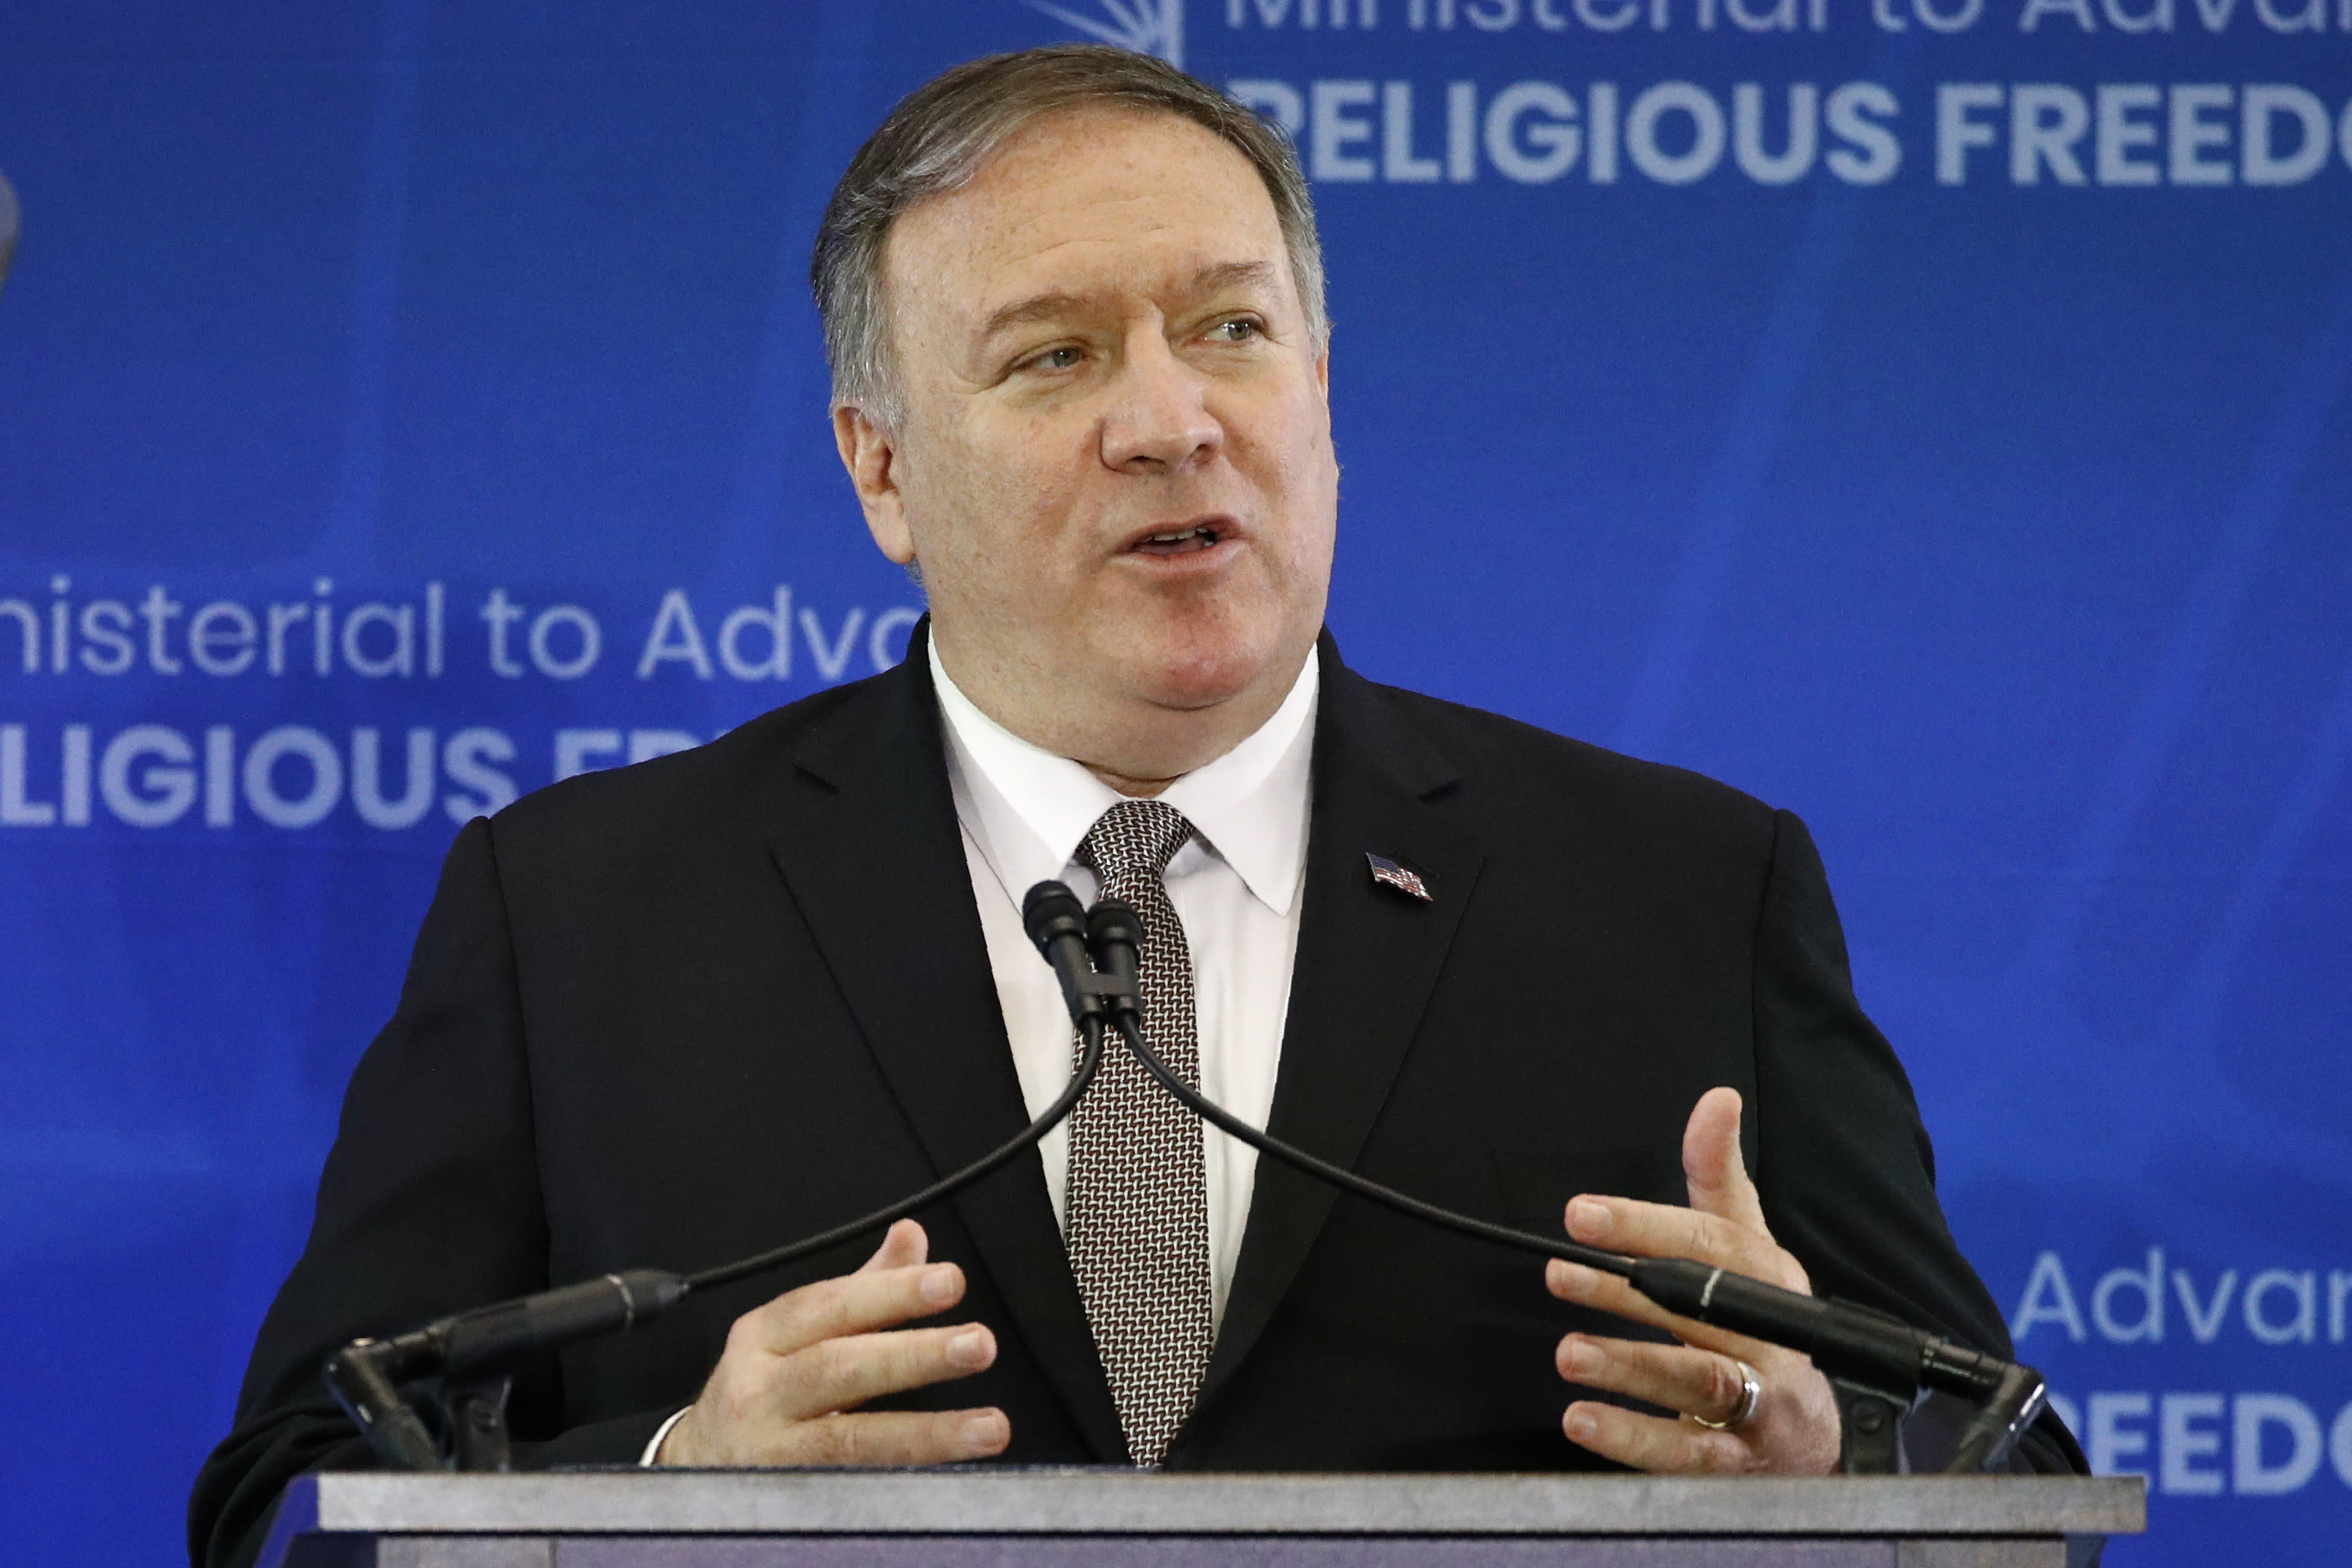 Hypocritical US can't comment on religious freedom: China says